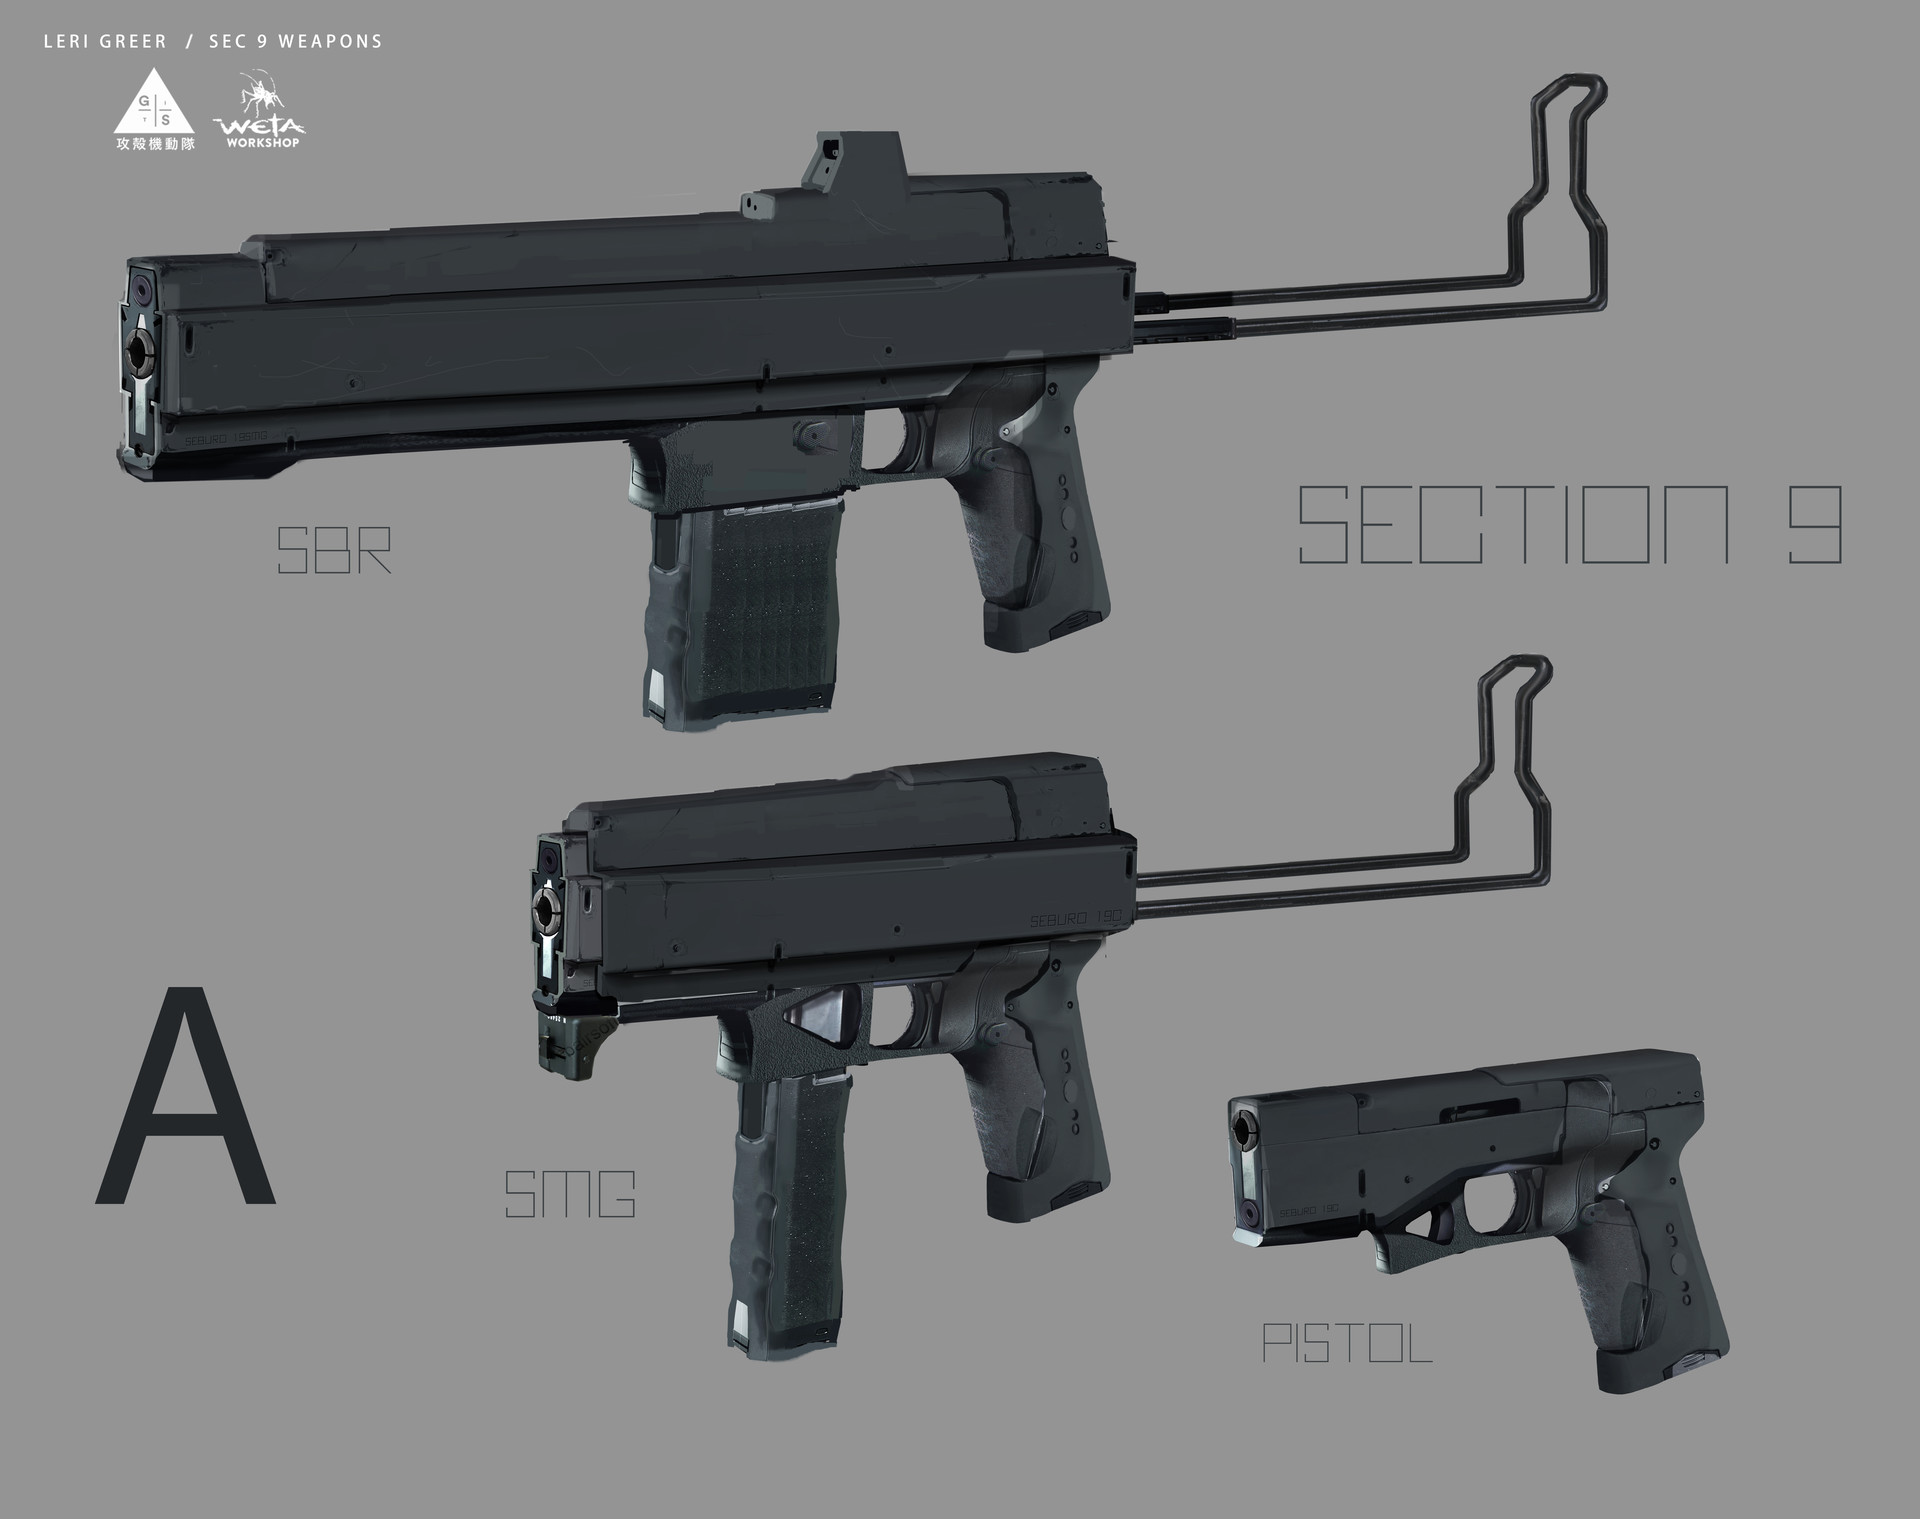 Section 9 Weapons - Artists: Leri Greer